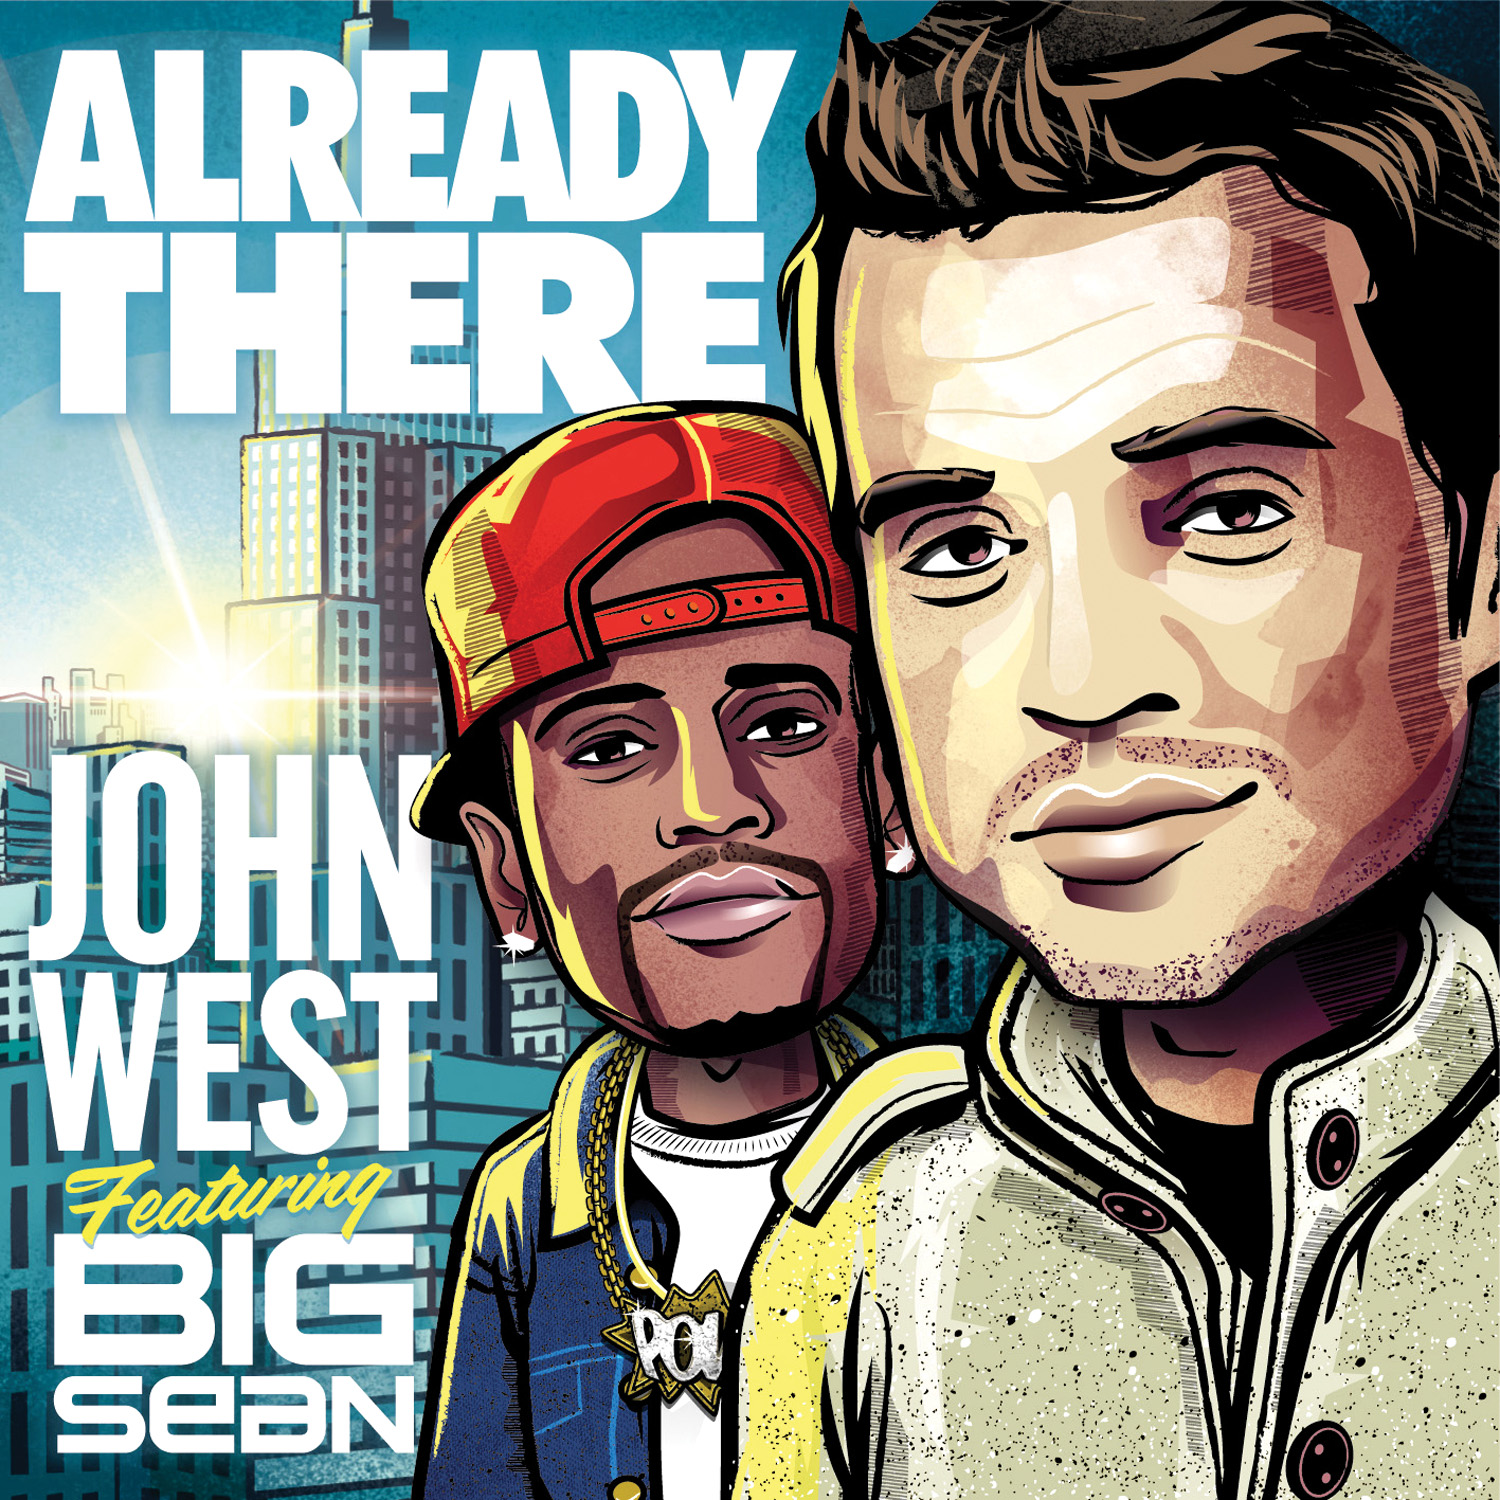 John West Already There